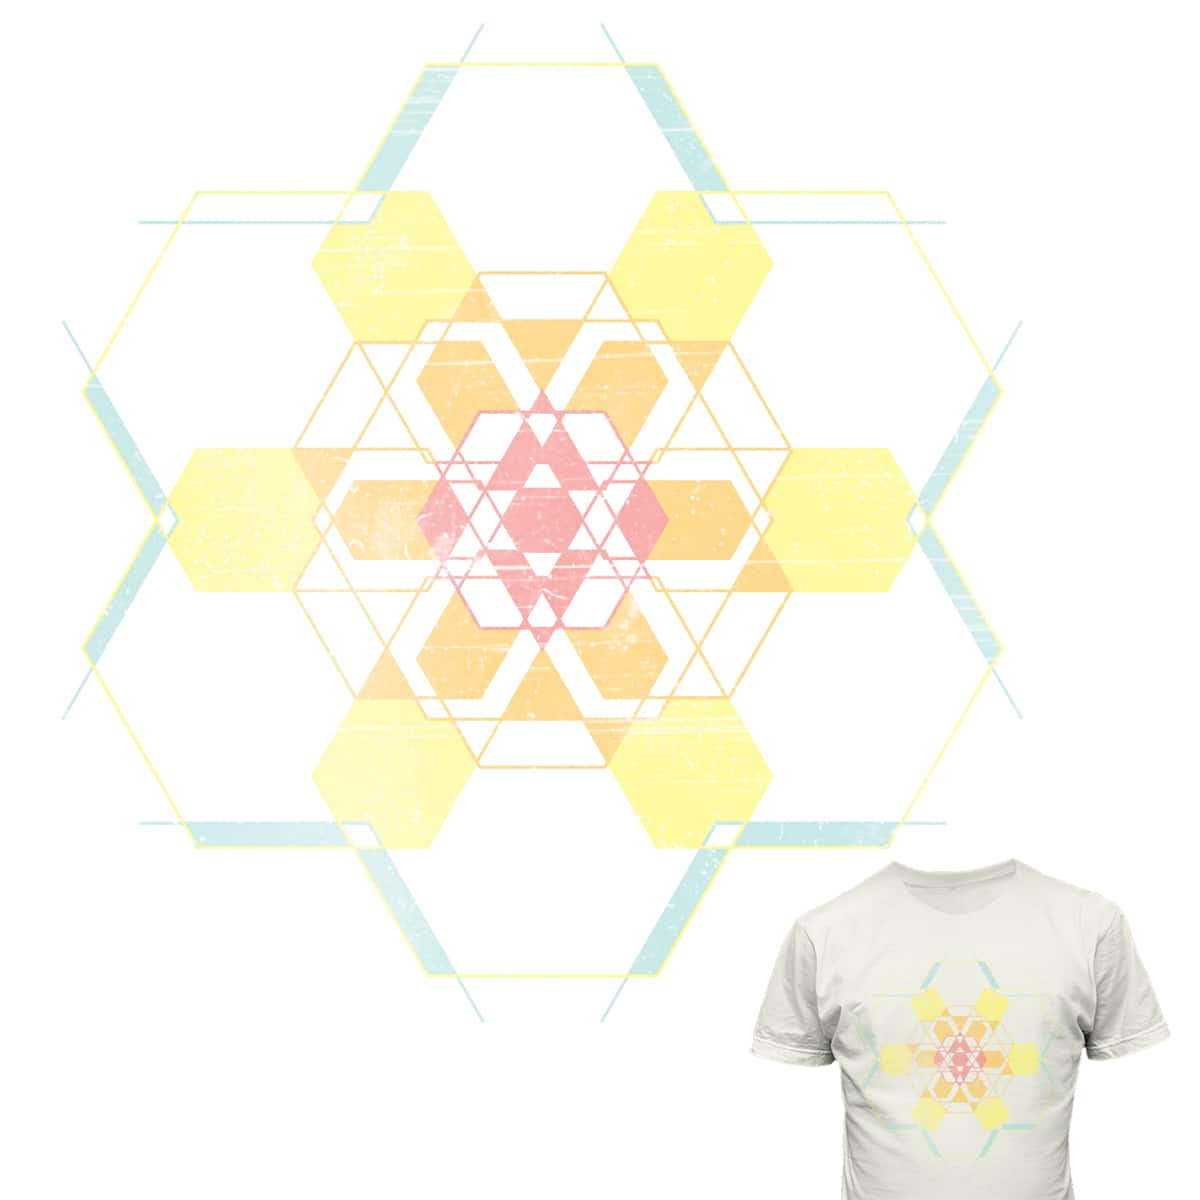 Summer Snowflake by Fungusamungus on Threadless